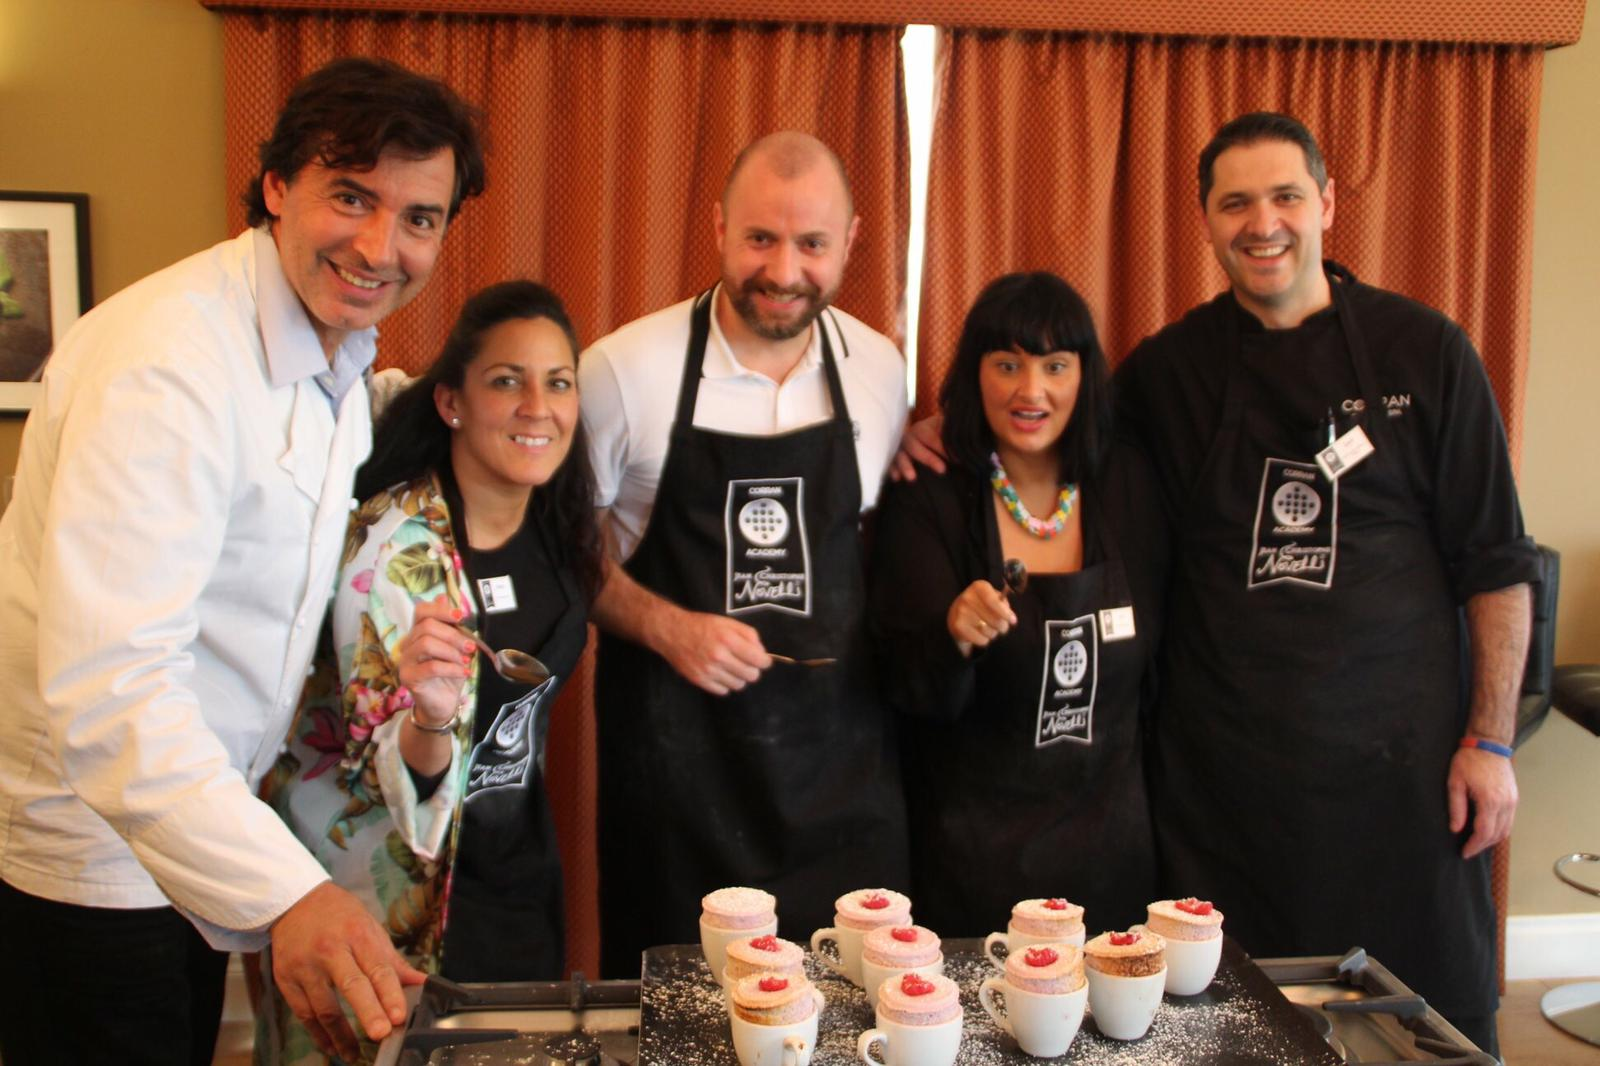 Soufle making with Jean Christophe Novelli at The Corran Resort